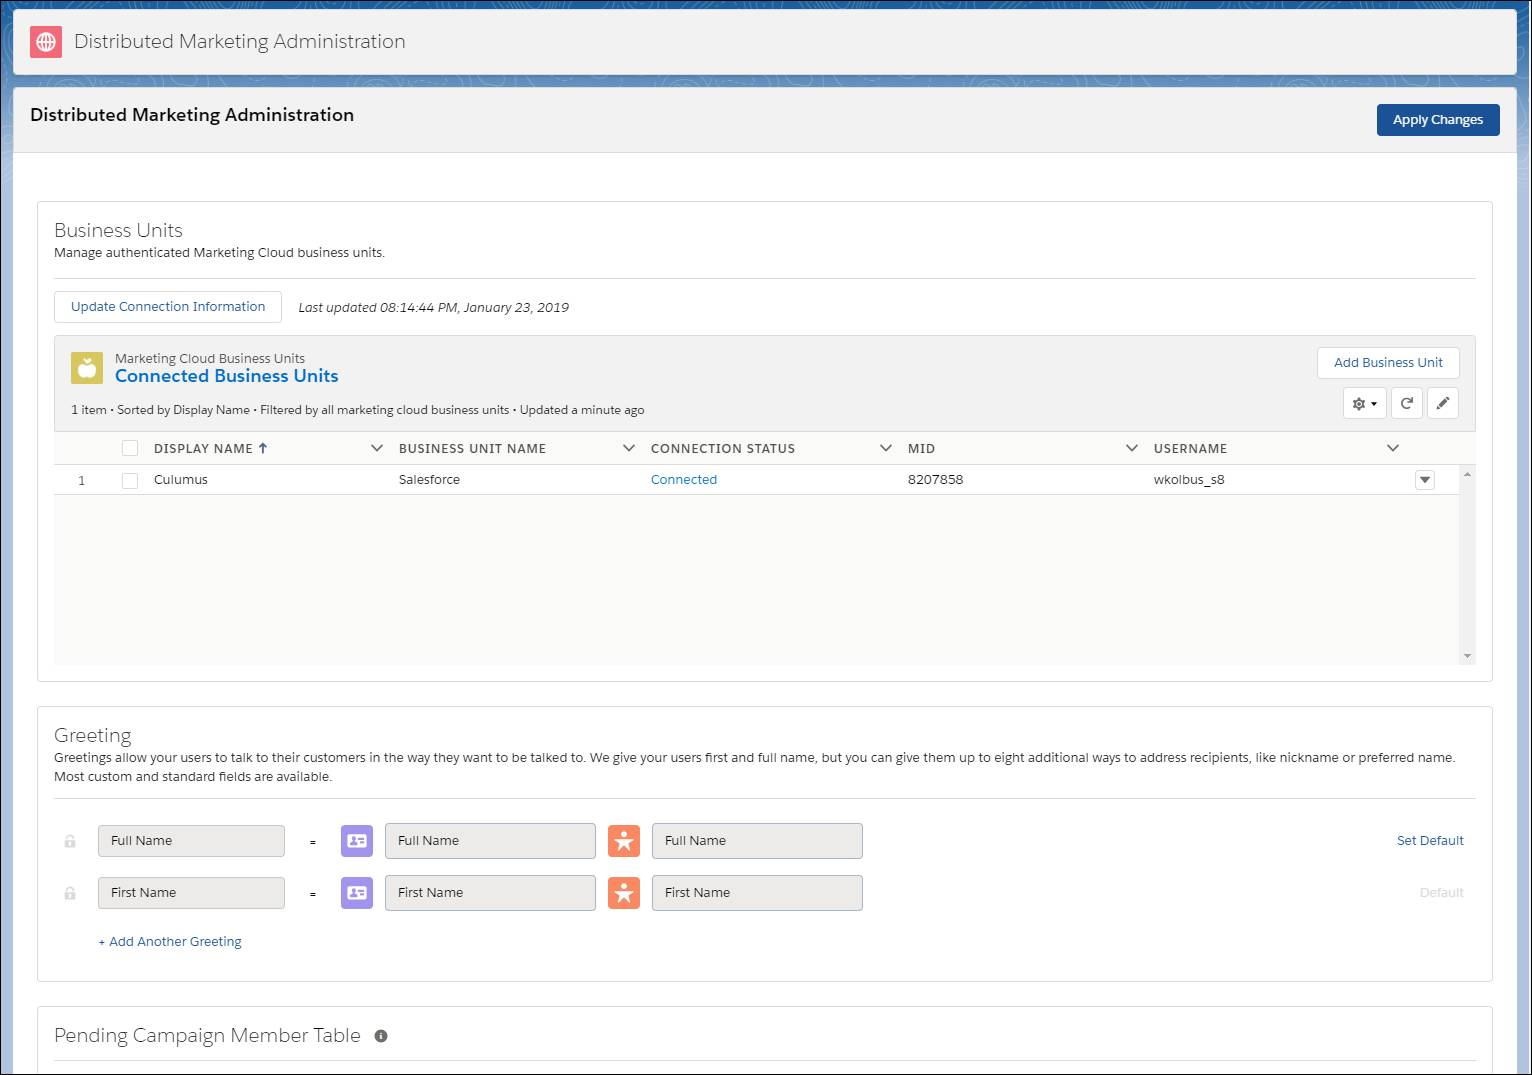 The Distributed Marketing Administration app interface